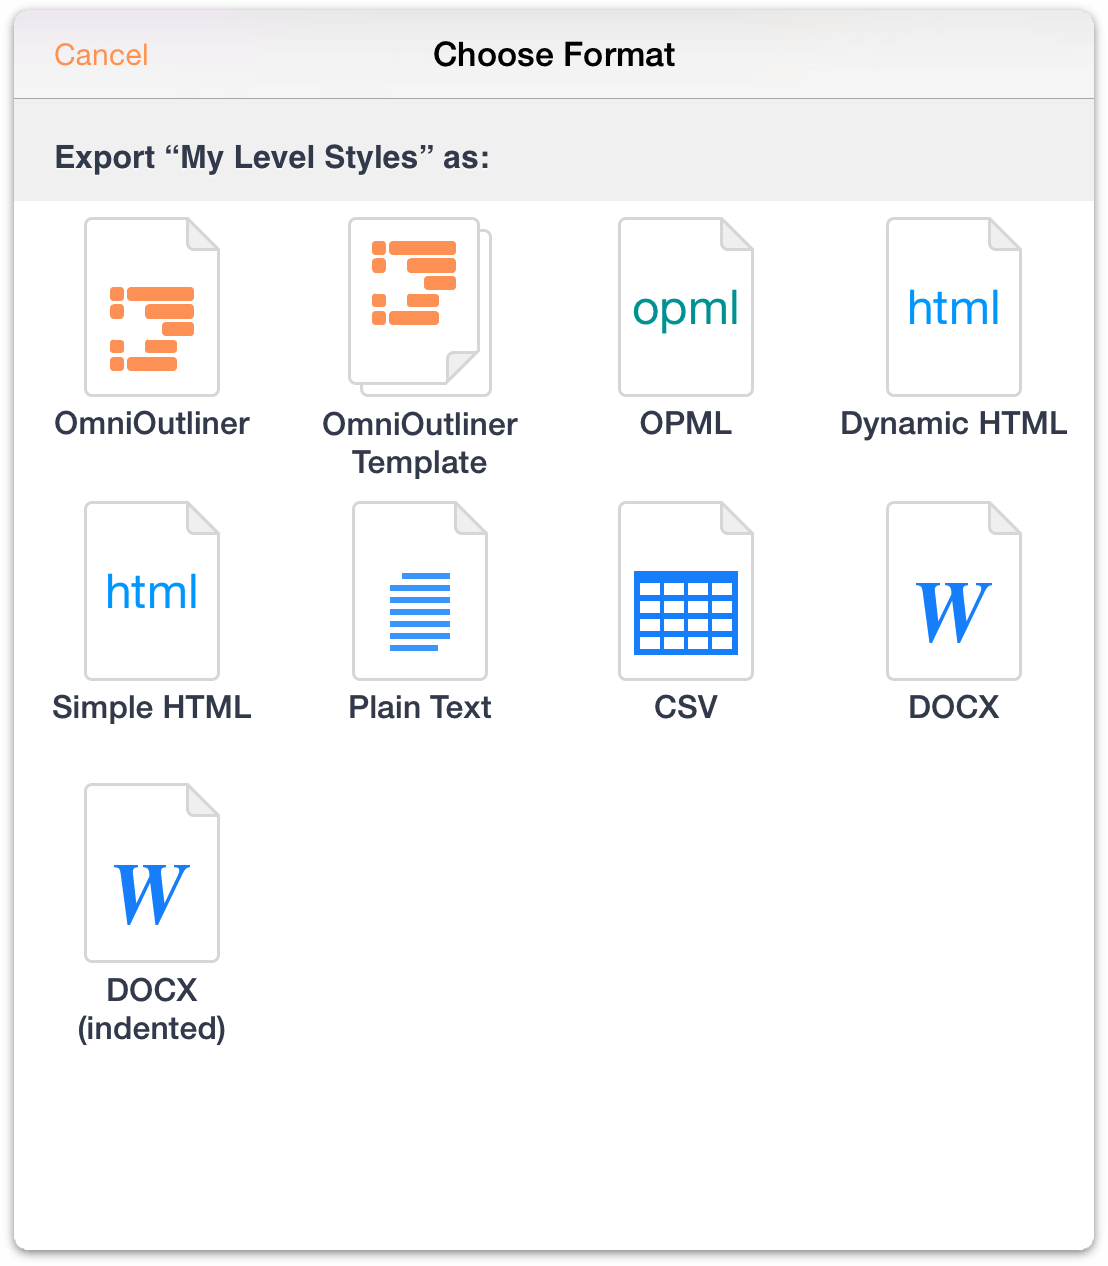 omnioutliner 2 7 for ios user manual working in the cloud